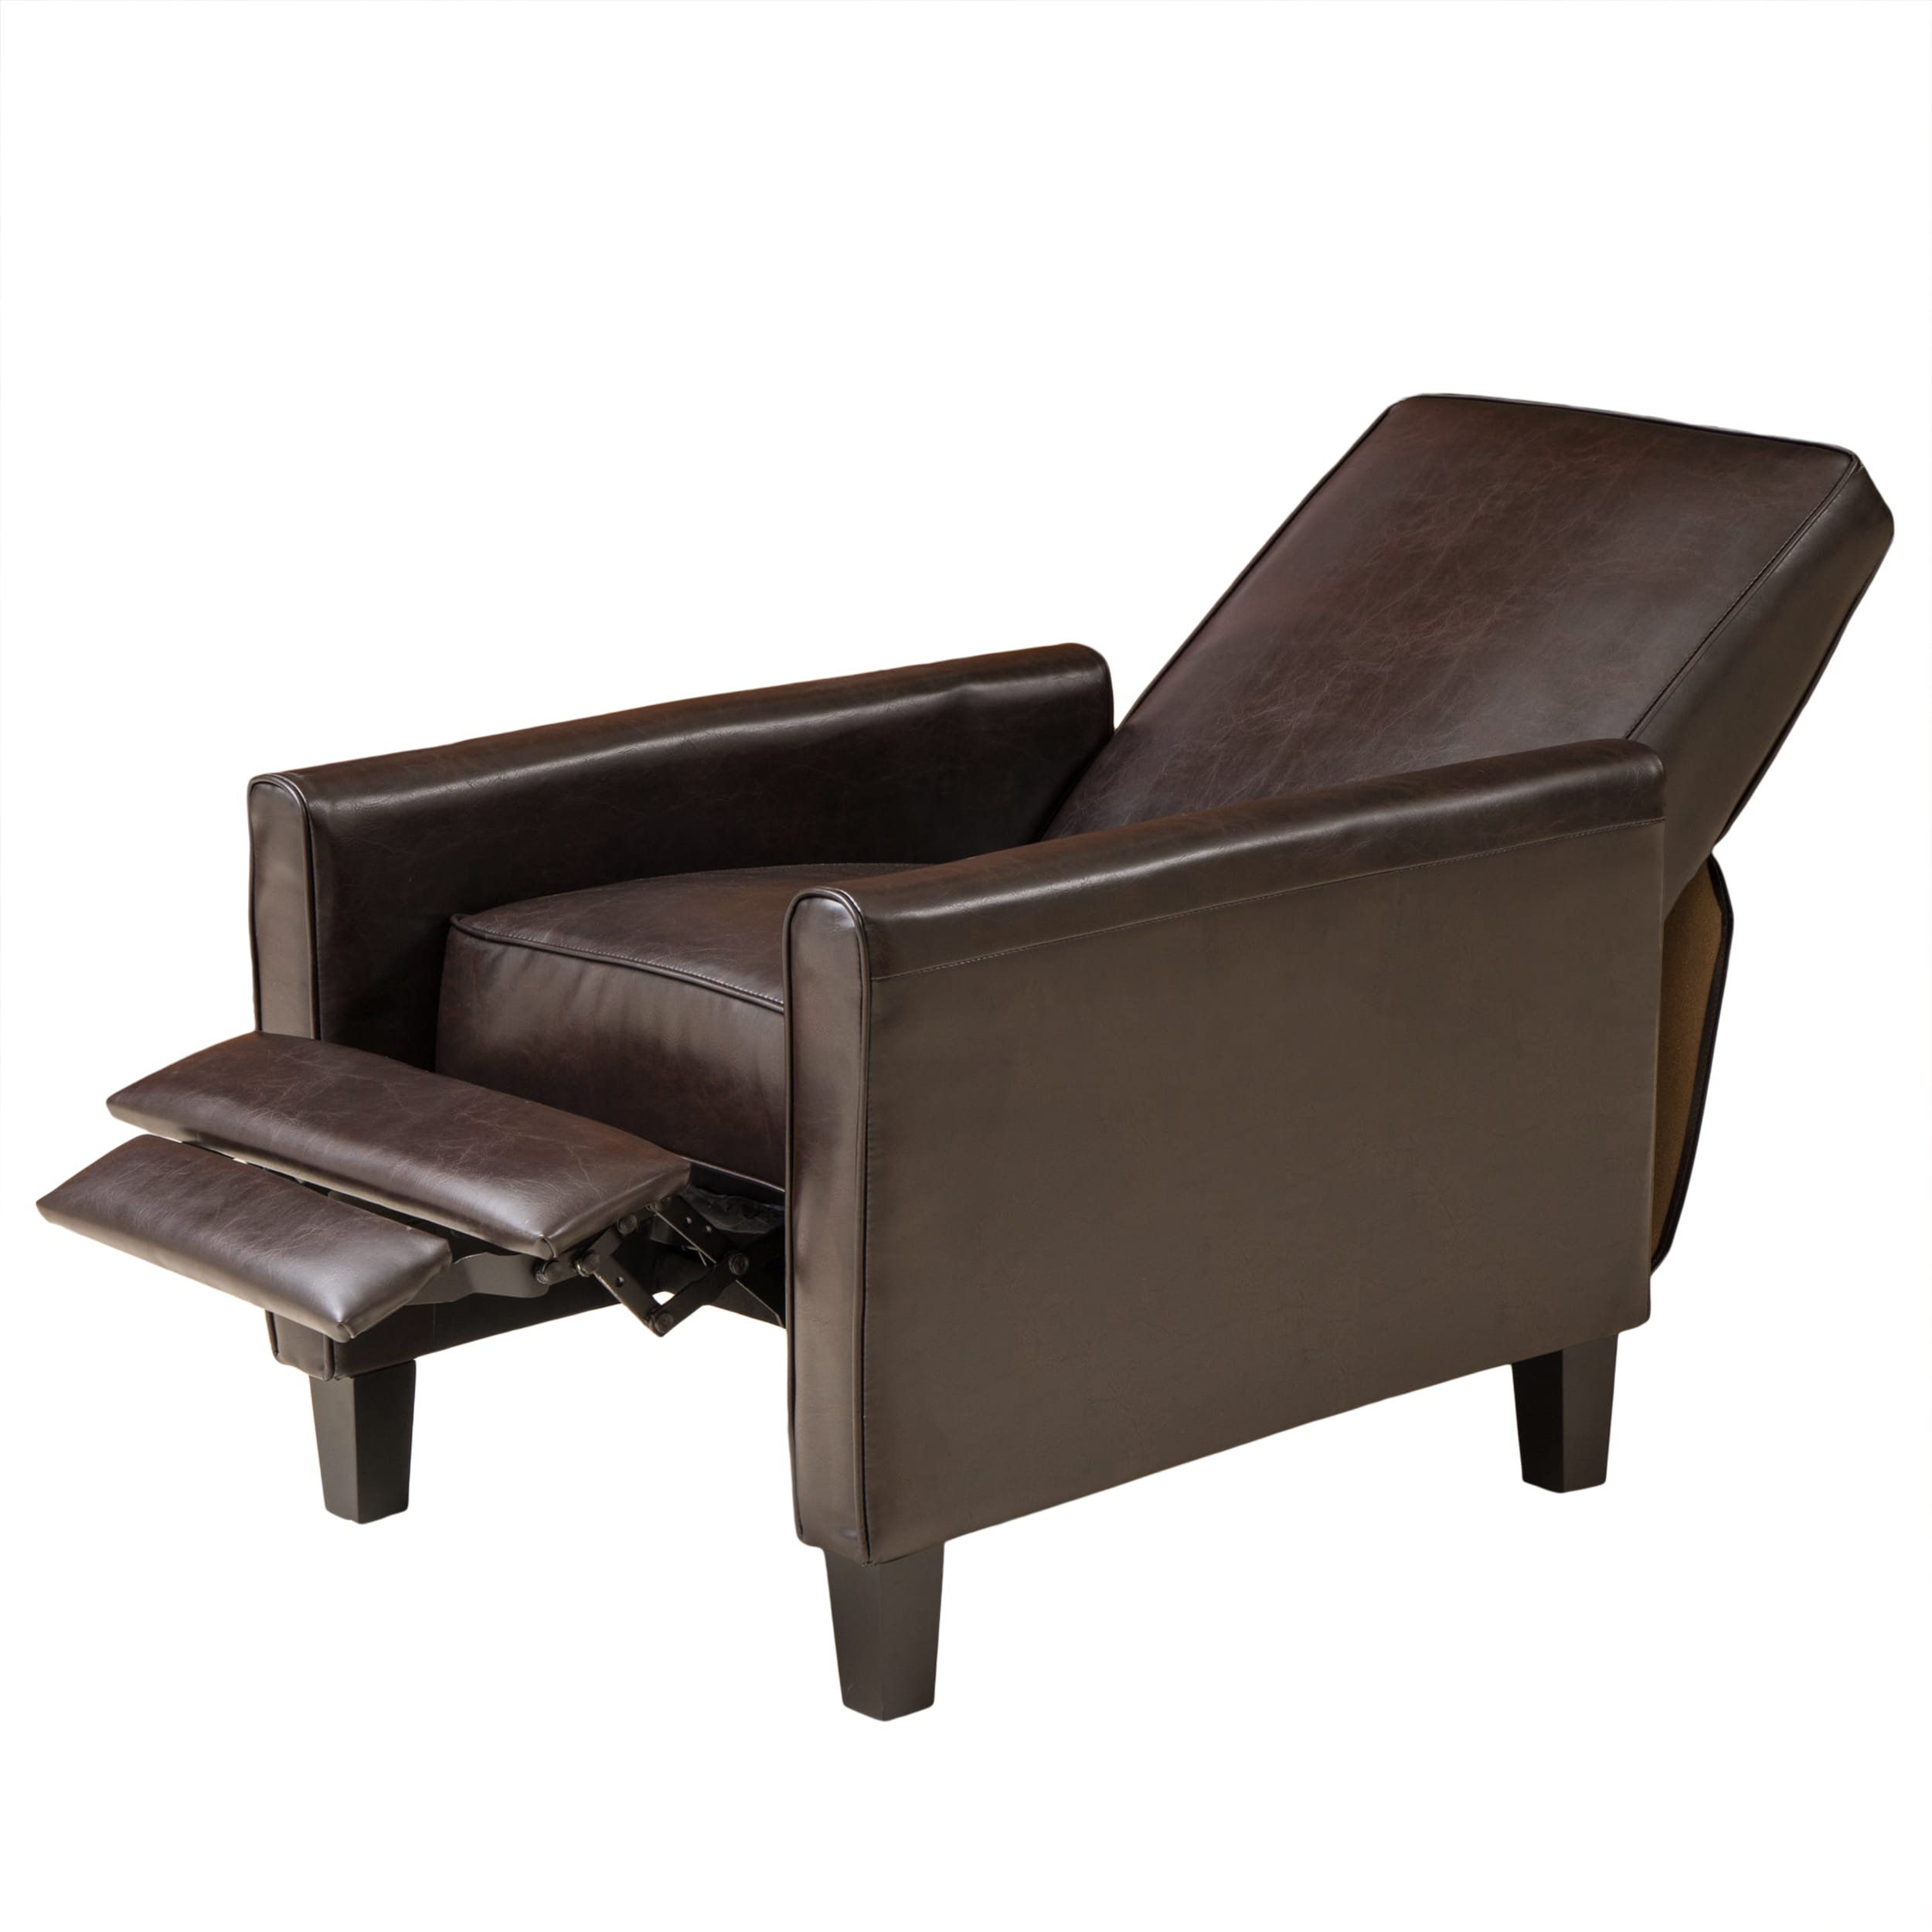 Shop Darvis Brown Bonded Leather Recliner Club Chair by Christopher Knight Home - On Sale - Free Shipping Today - Overstock.com - 6756900  sc 1 st  Overstock.com & Shop Darvis Brown Bonded Leather Recliner Club Chair by Christopher ...